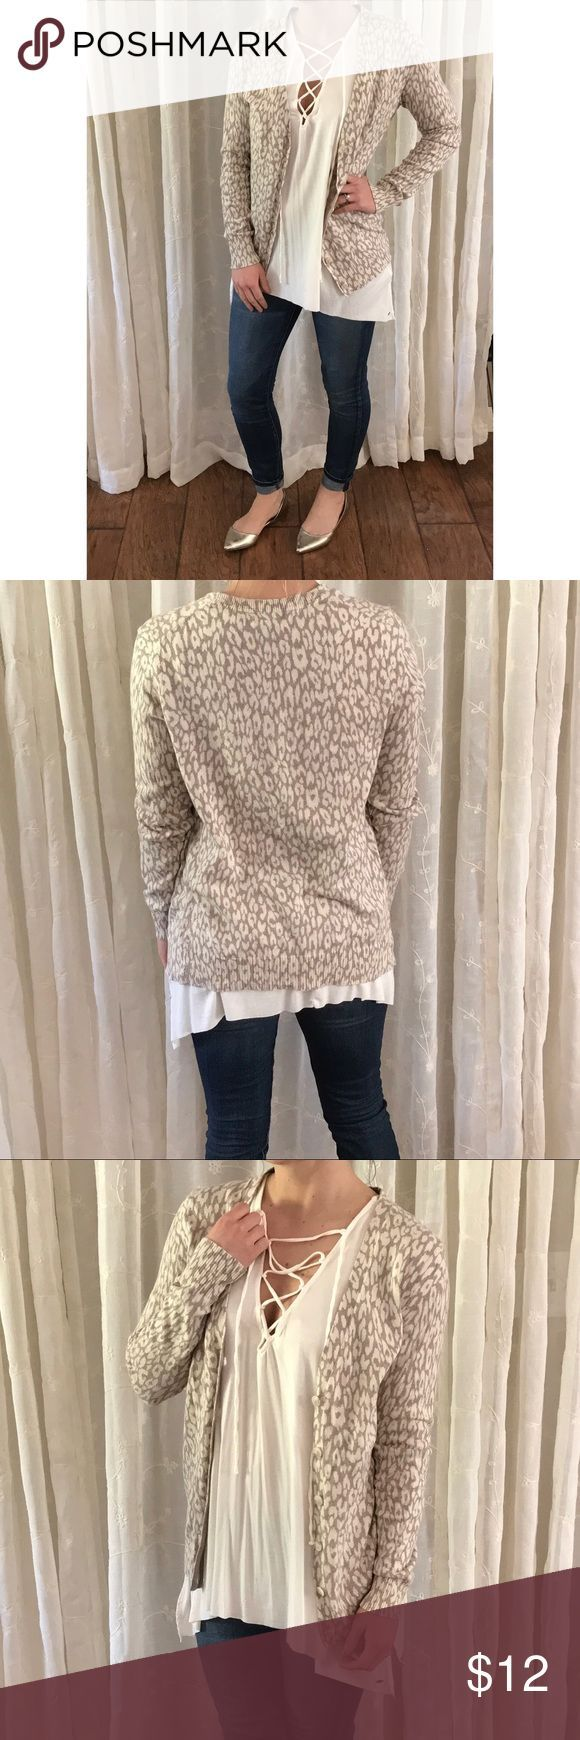 cool Tendance salopette 2017 - GAP Beige + Cream Leopard Print Cardigan GAP beige + cream leopard print. Longer... Check more at https://listspirit.com/tendance-salopette-2017-gap-beige-cream-leopard-print-cardigan-gap-beige-cream-leopard-print-longer/